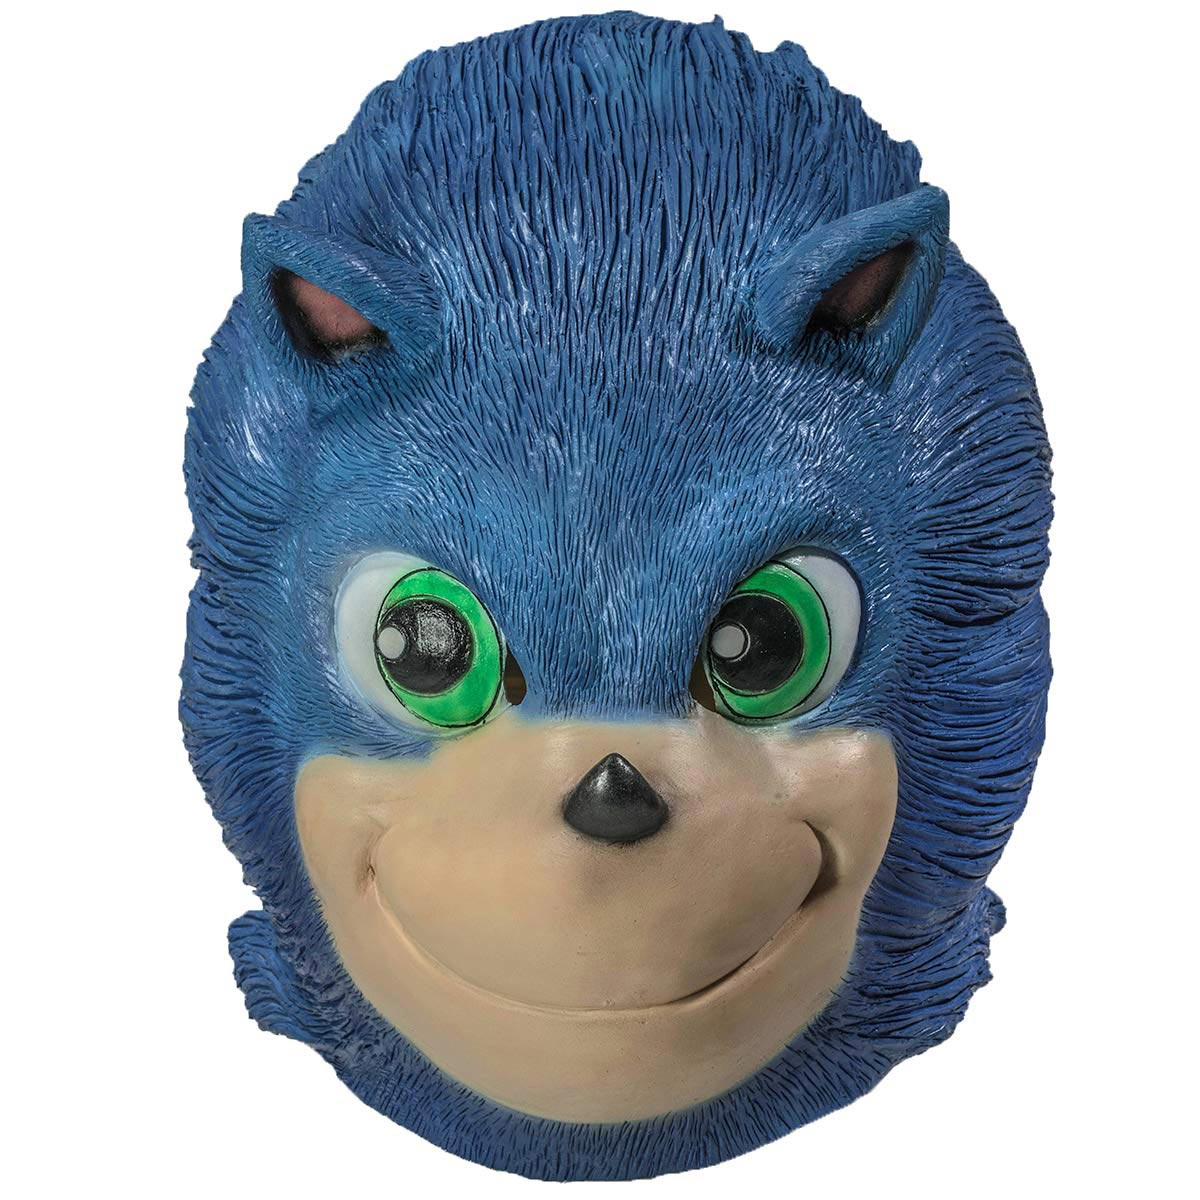 The Sonic The Hedgehog Movie Gets It S First Official Merch Halloween Costumes Resetera